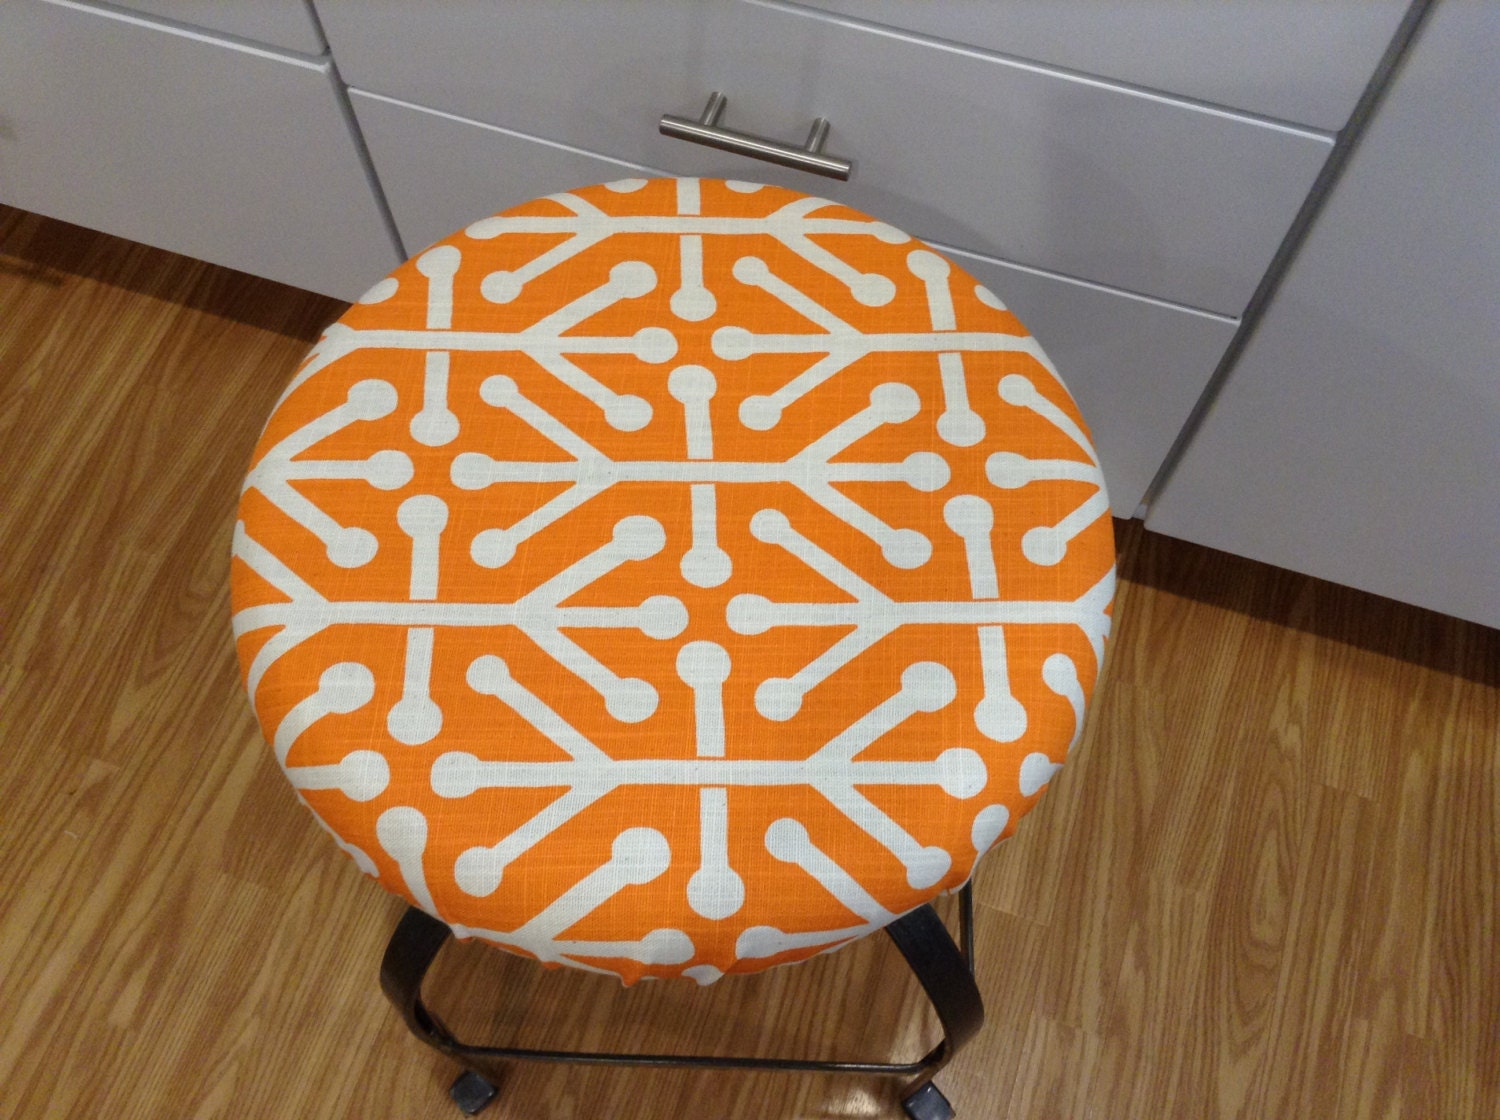 Elasticized Round Barstool Cover Counter Stool Cover Orange